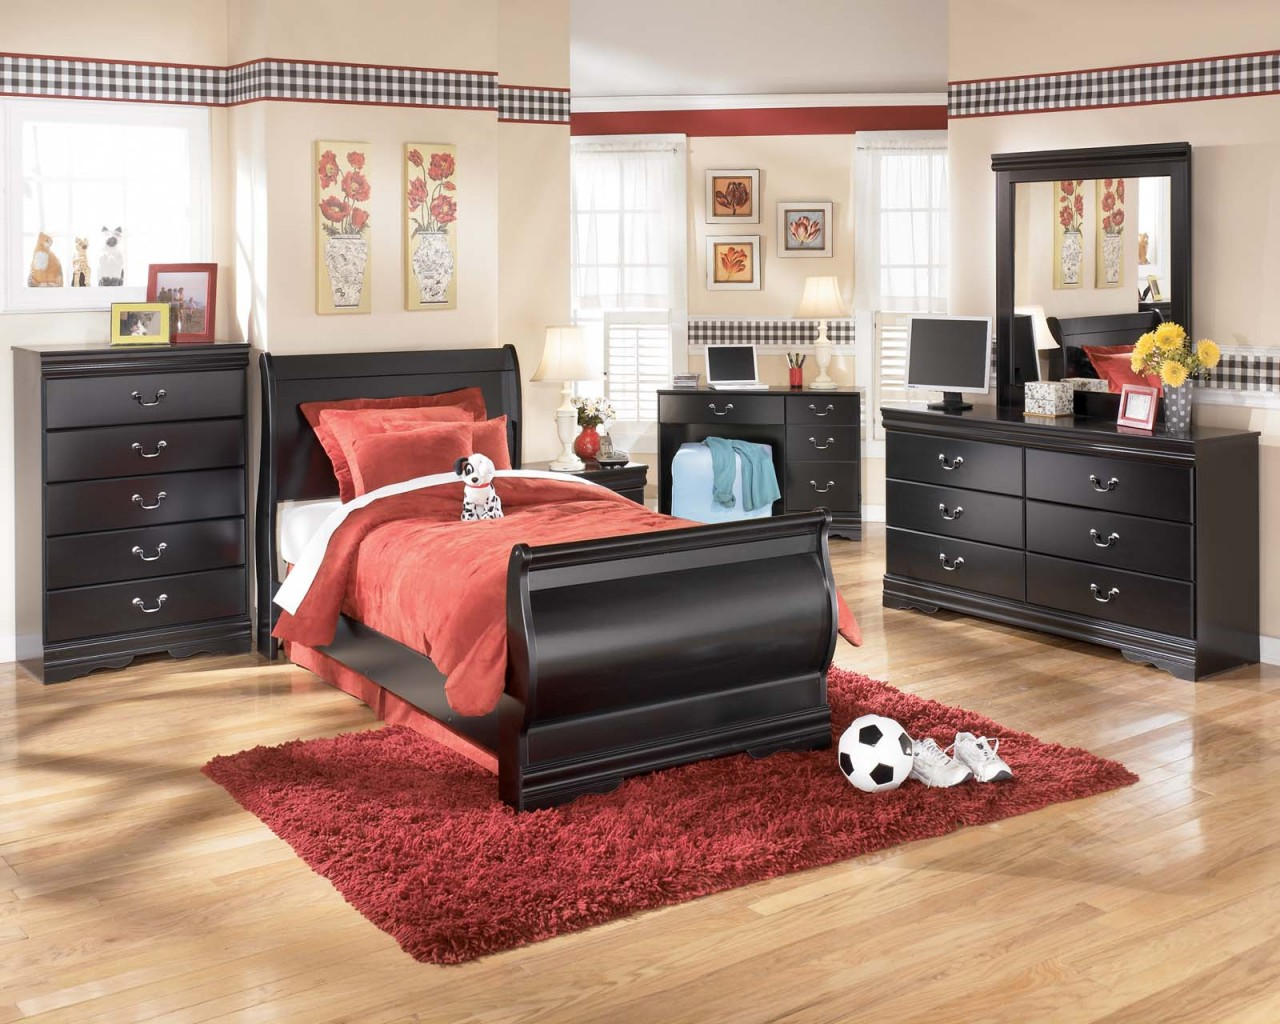 Cheap Bedroom Furniture Sets Under 500